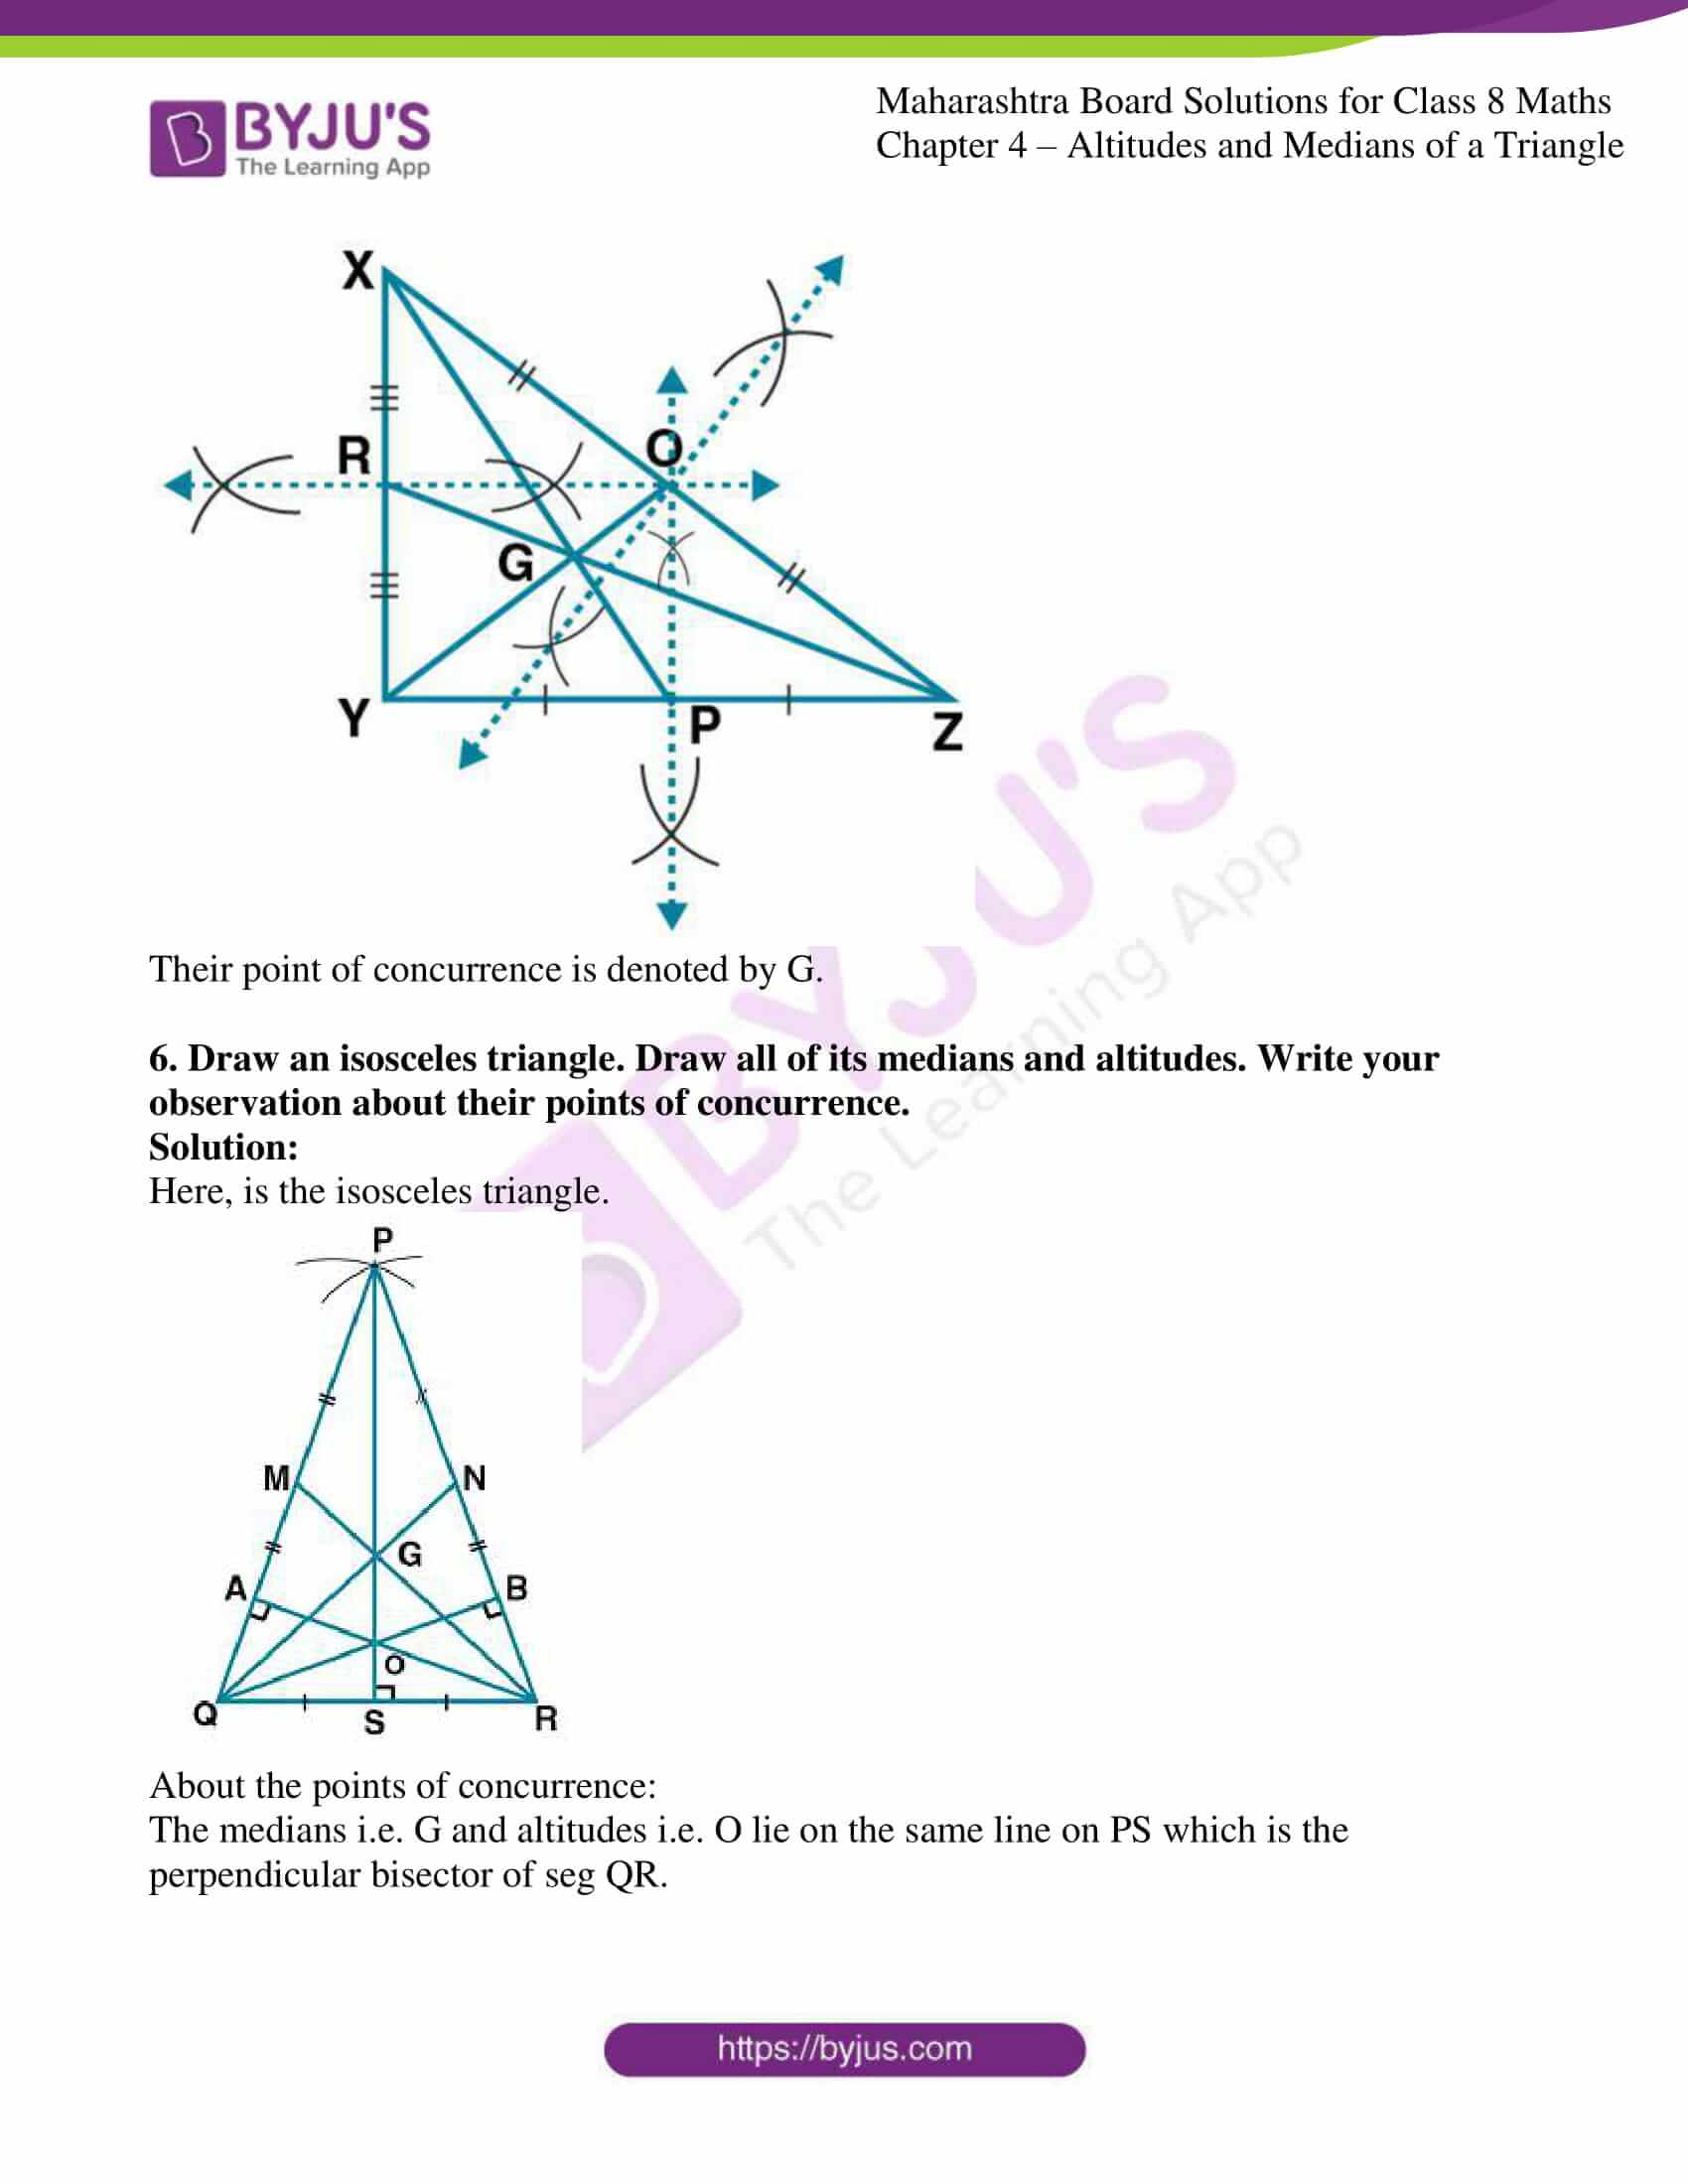 msbshse sol for class 8 maths chapter 4 4